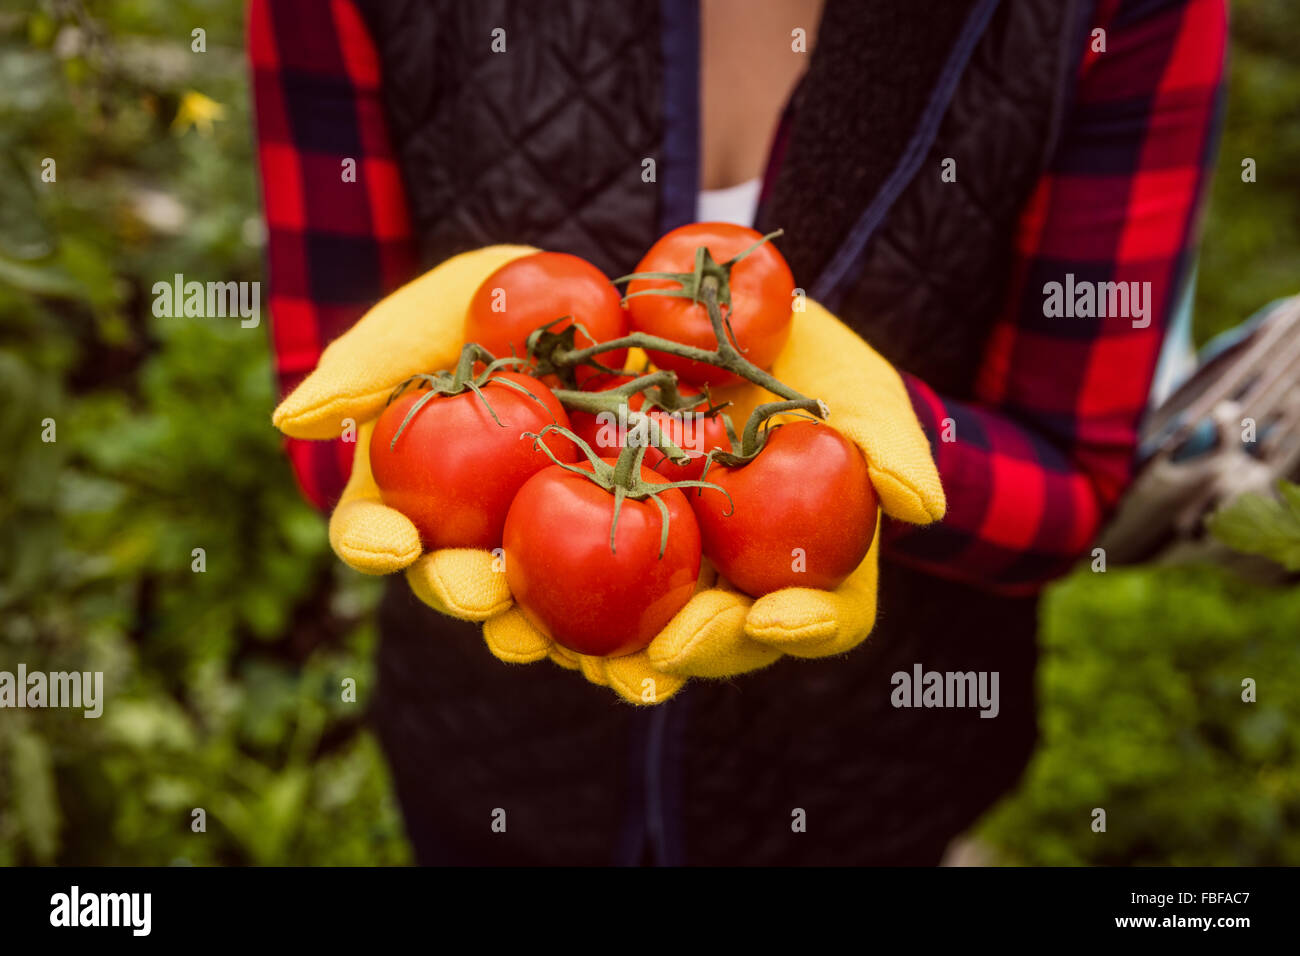 Woman with gloves holding tomato - Stock Image